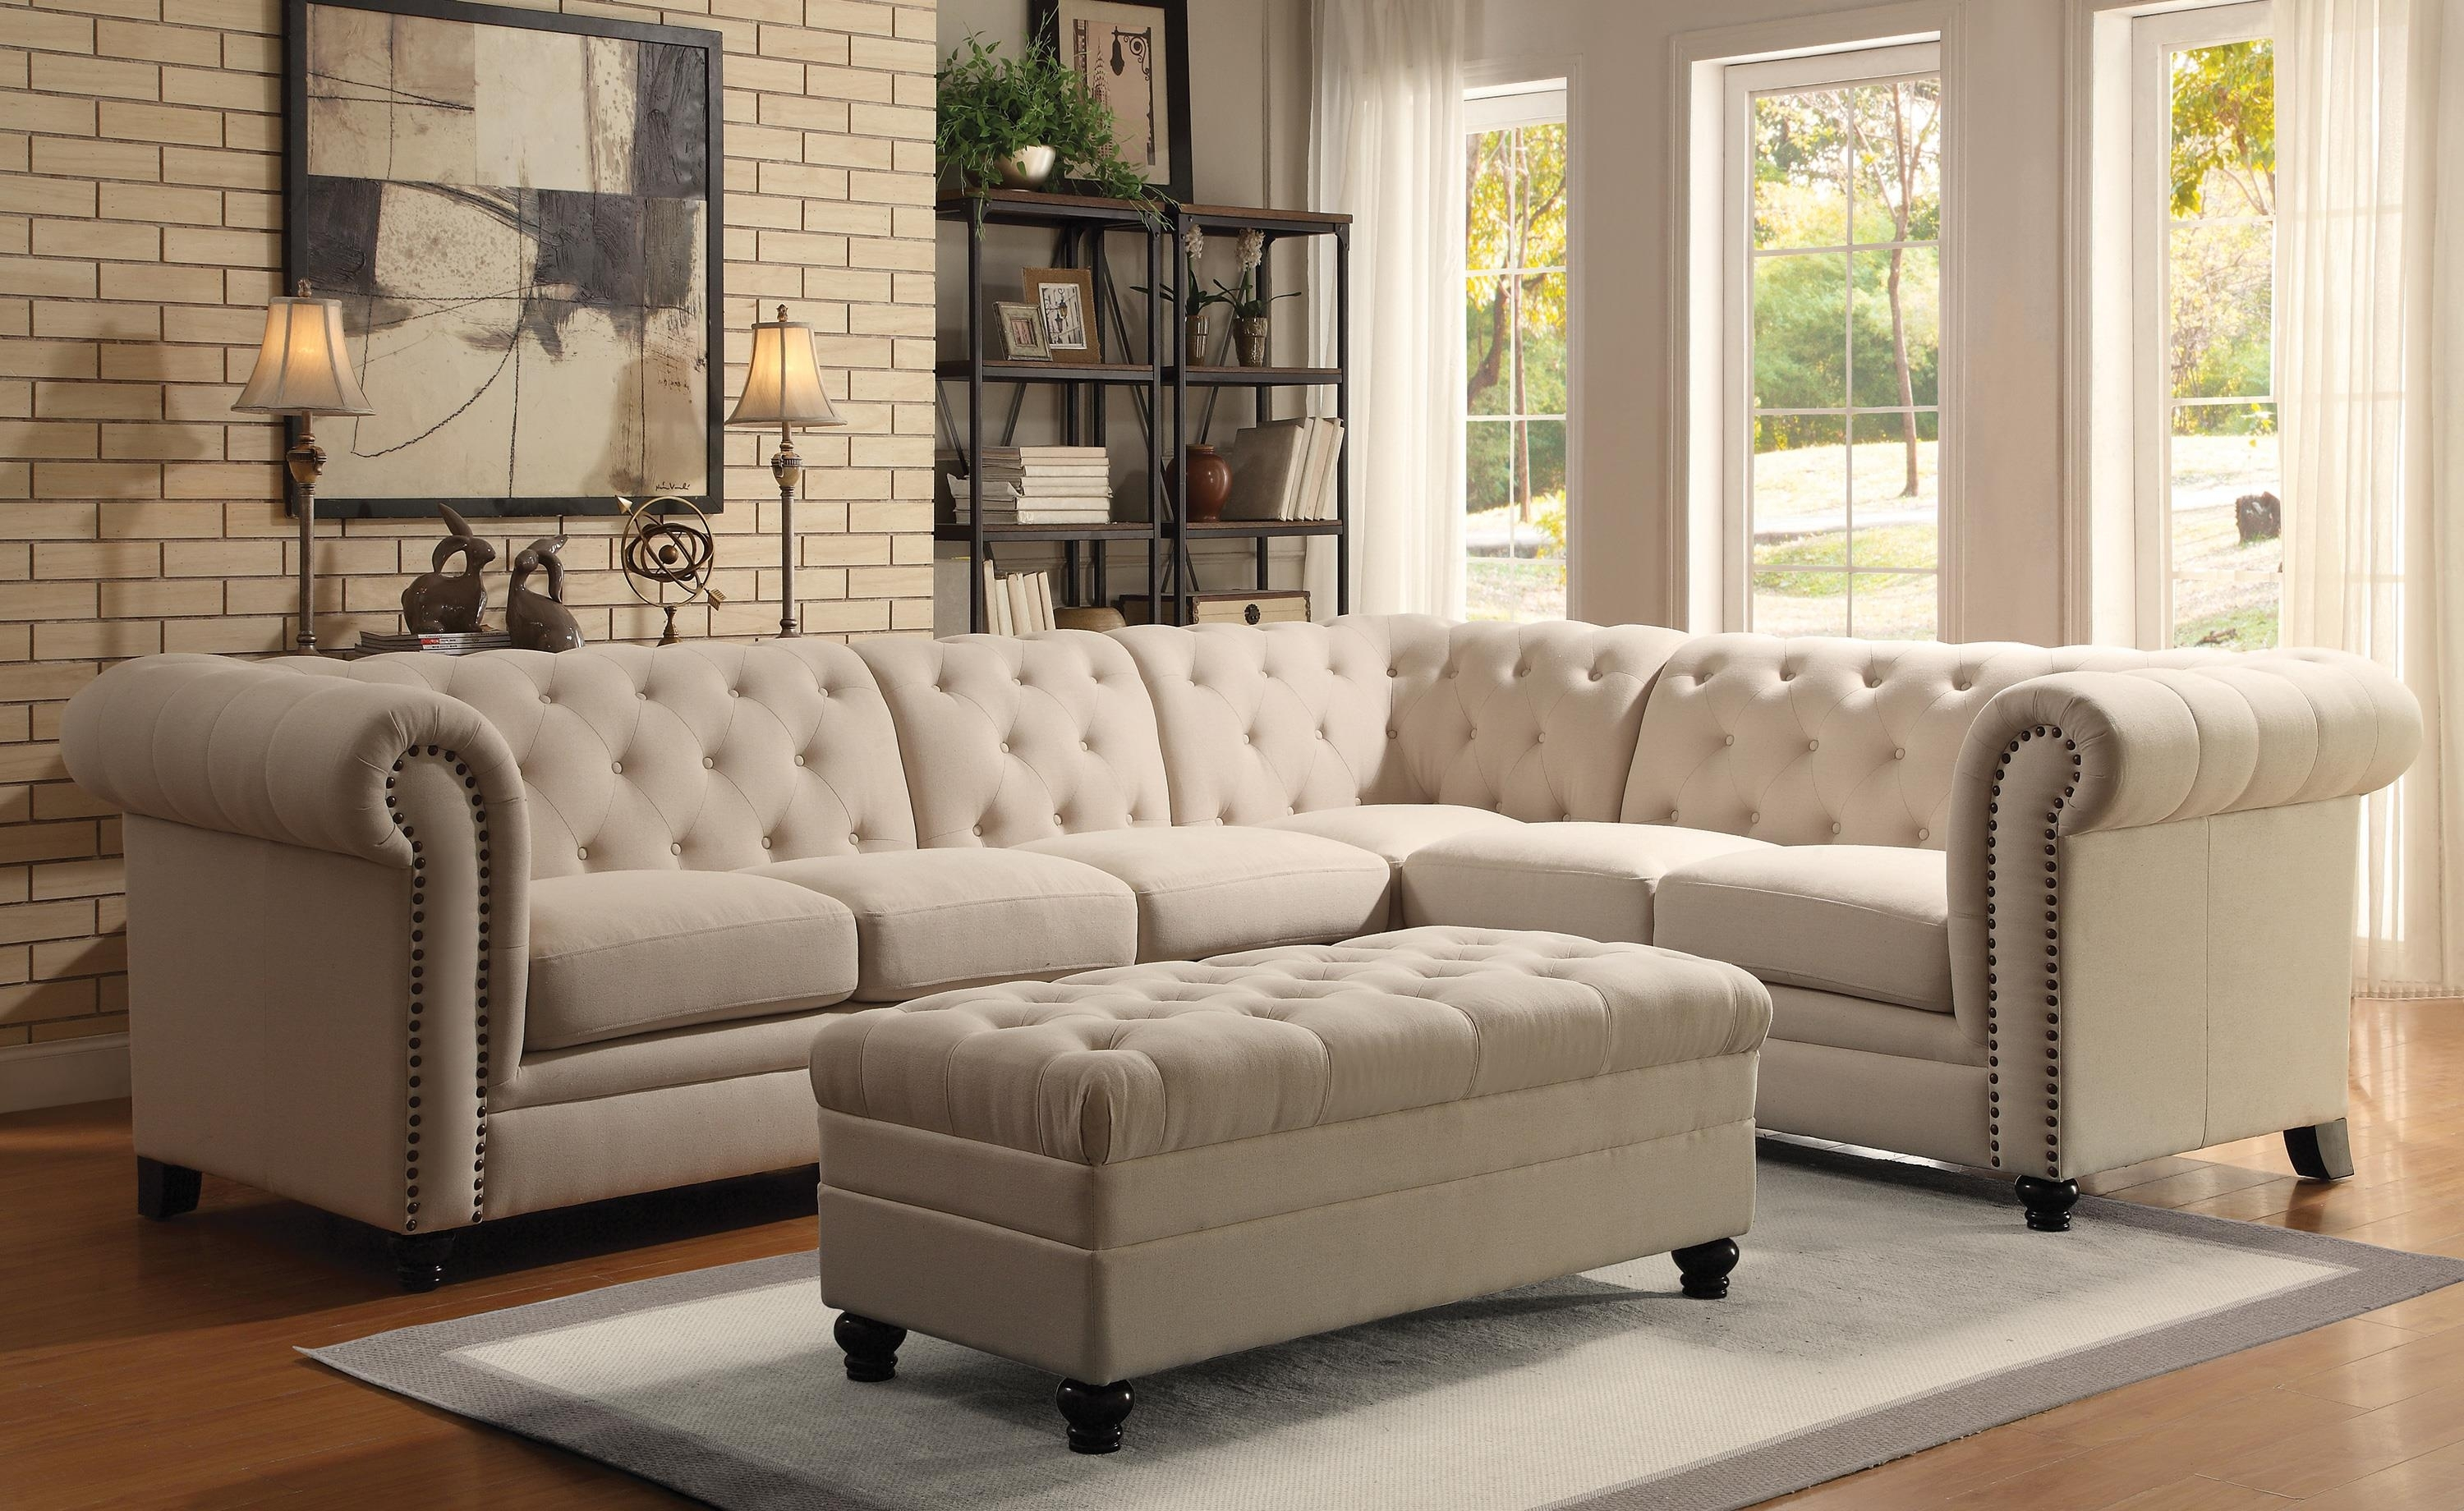 Featured Image of Tufted Sectional Sofas